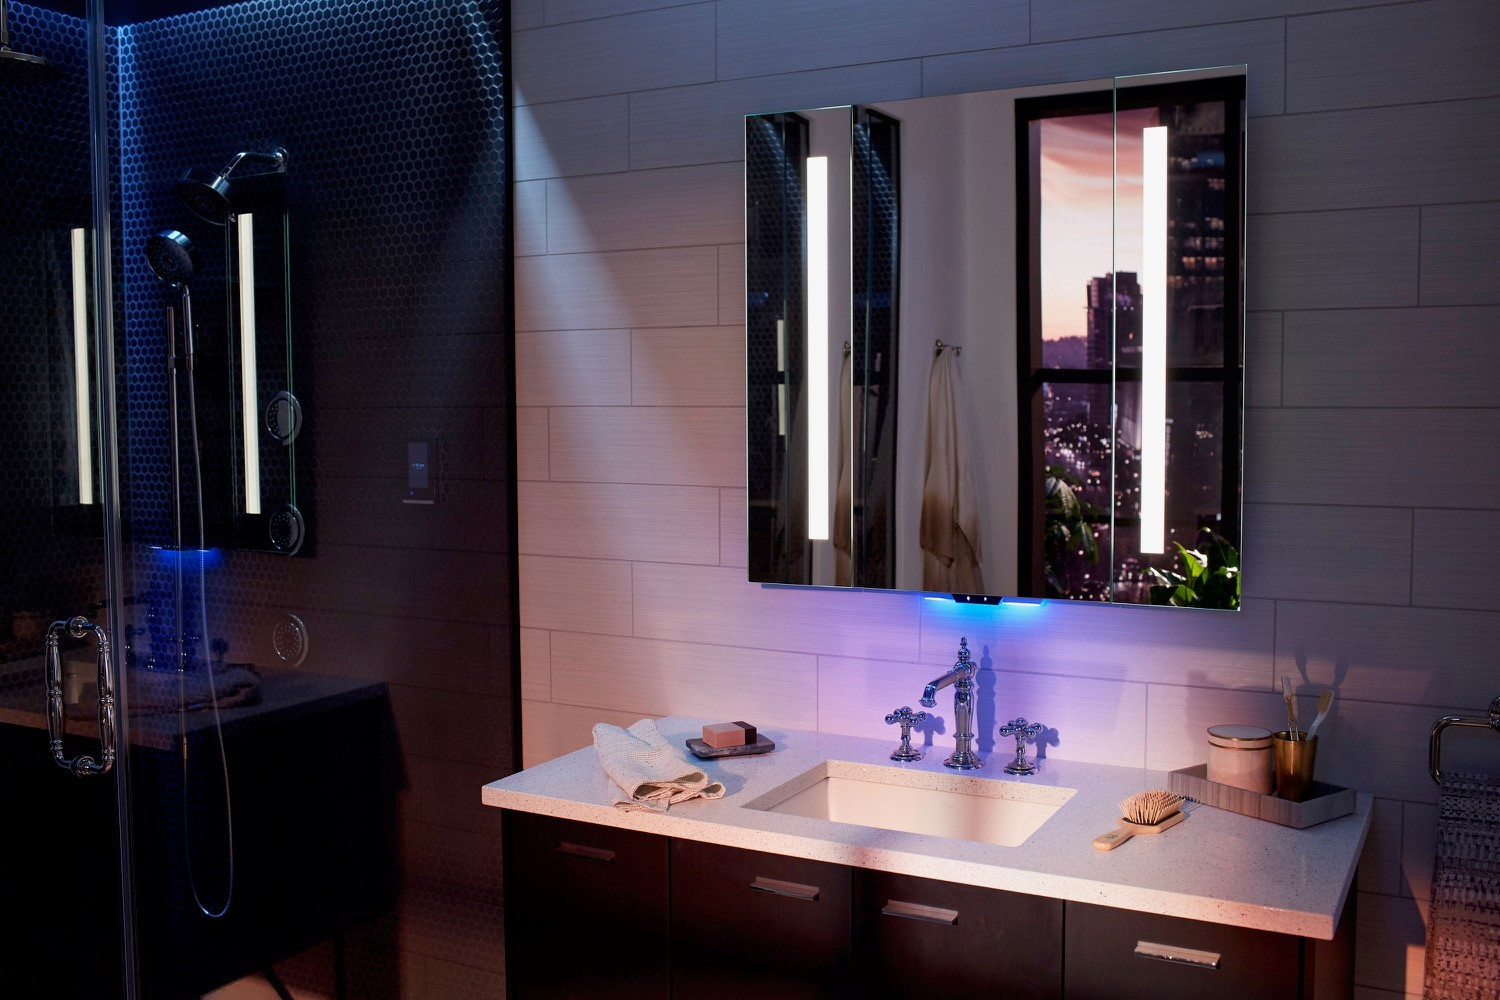 Kohler S Smart Toilet Asks You Bet On Privacy In Your Most